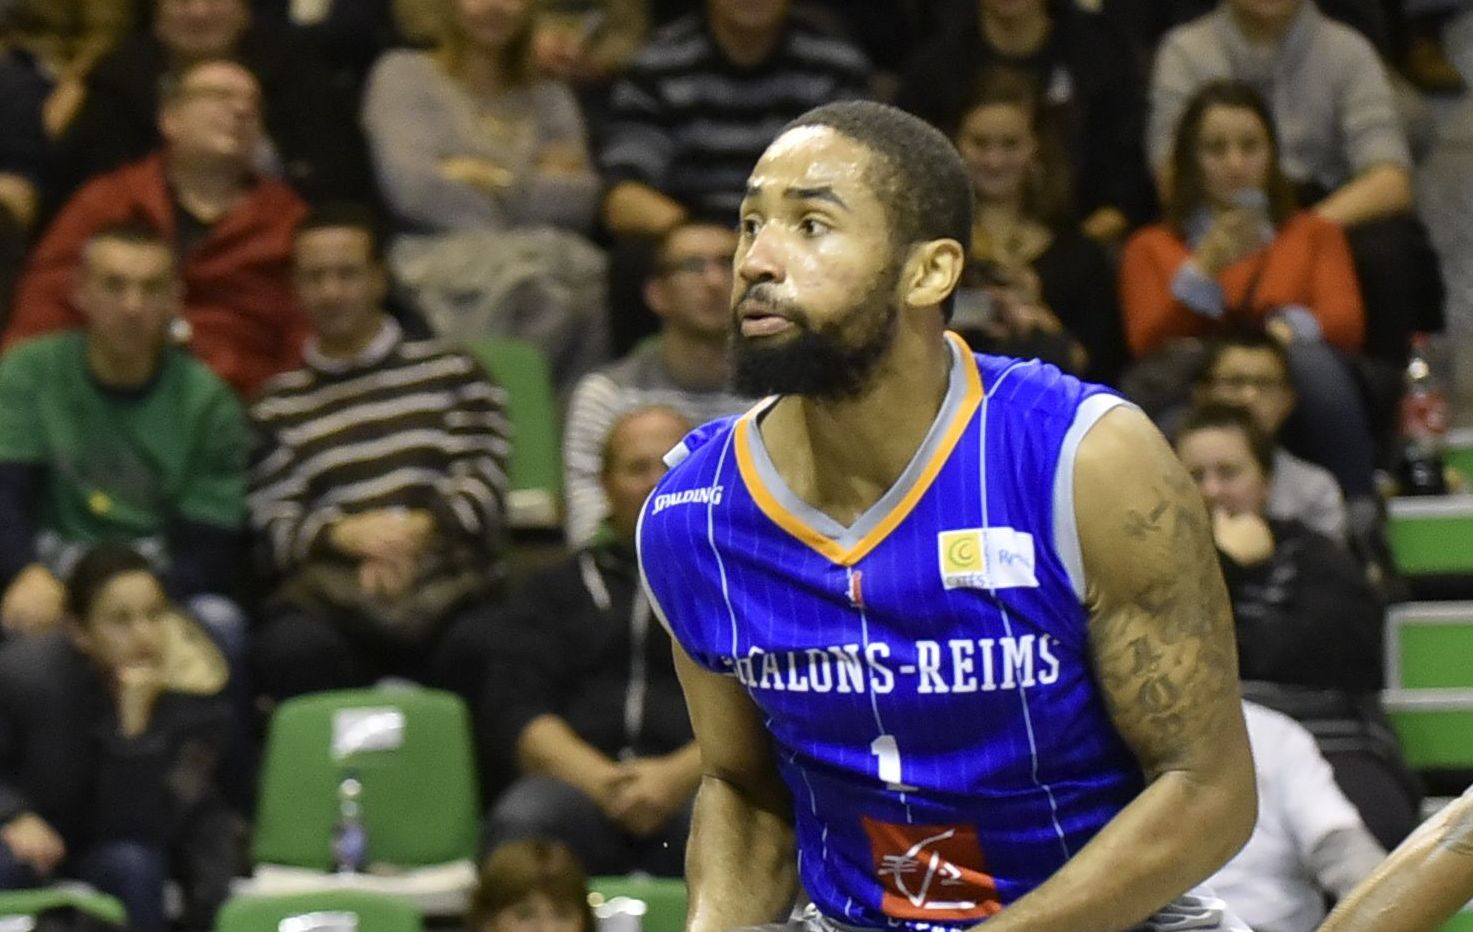 Basket - Pro A - Apr�s Limoges, Ch�lons-Reims s'offre Strasbourg !